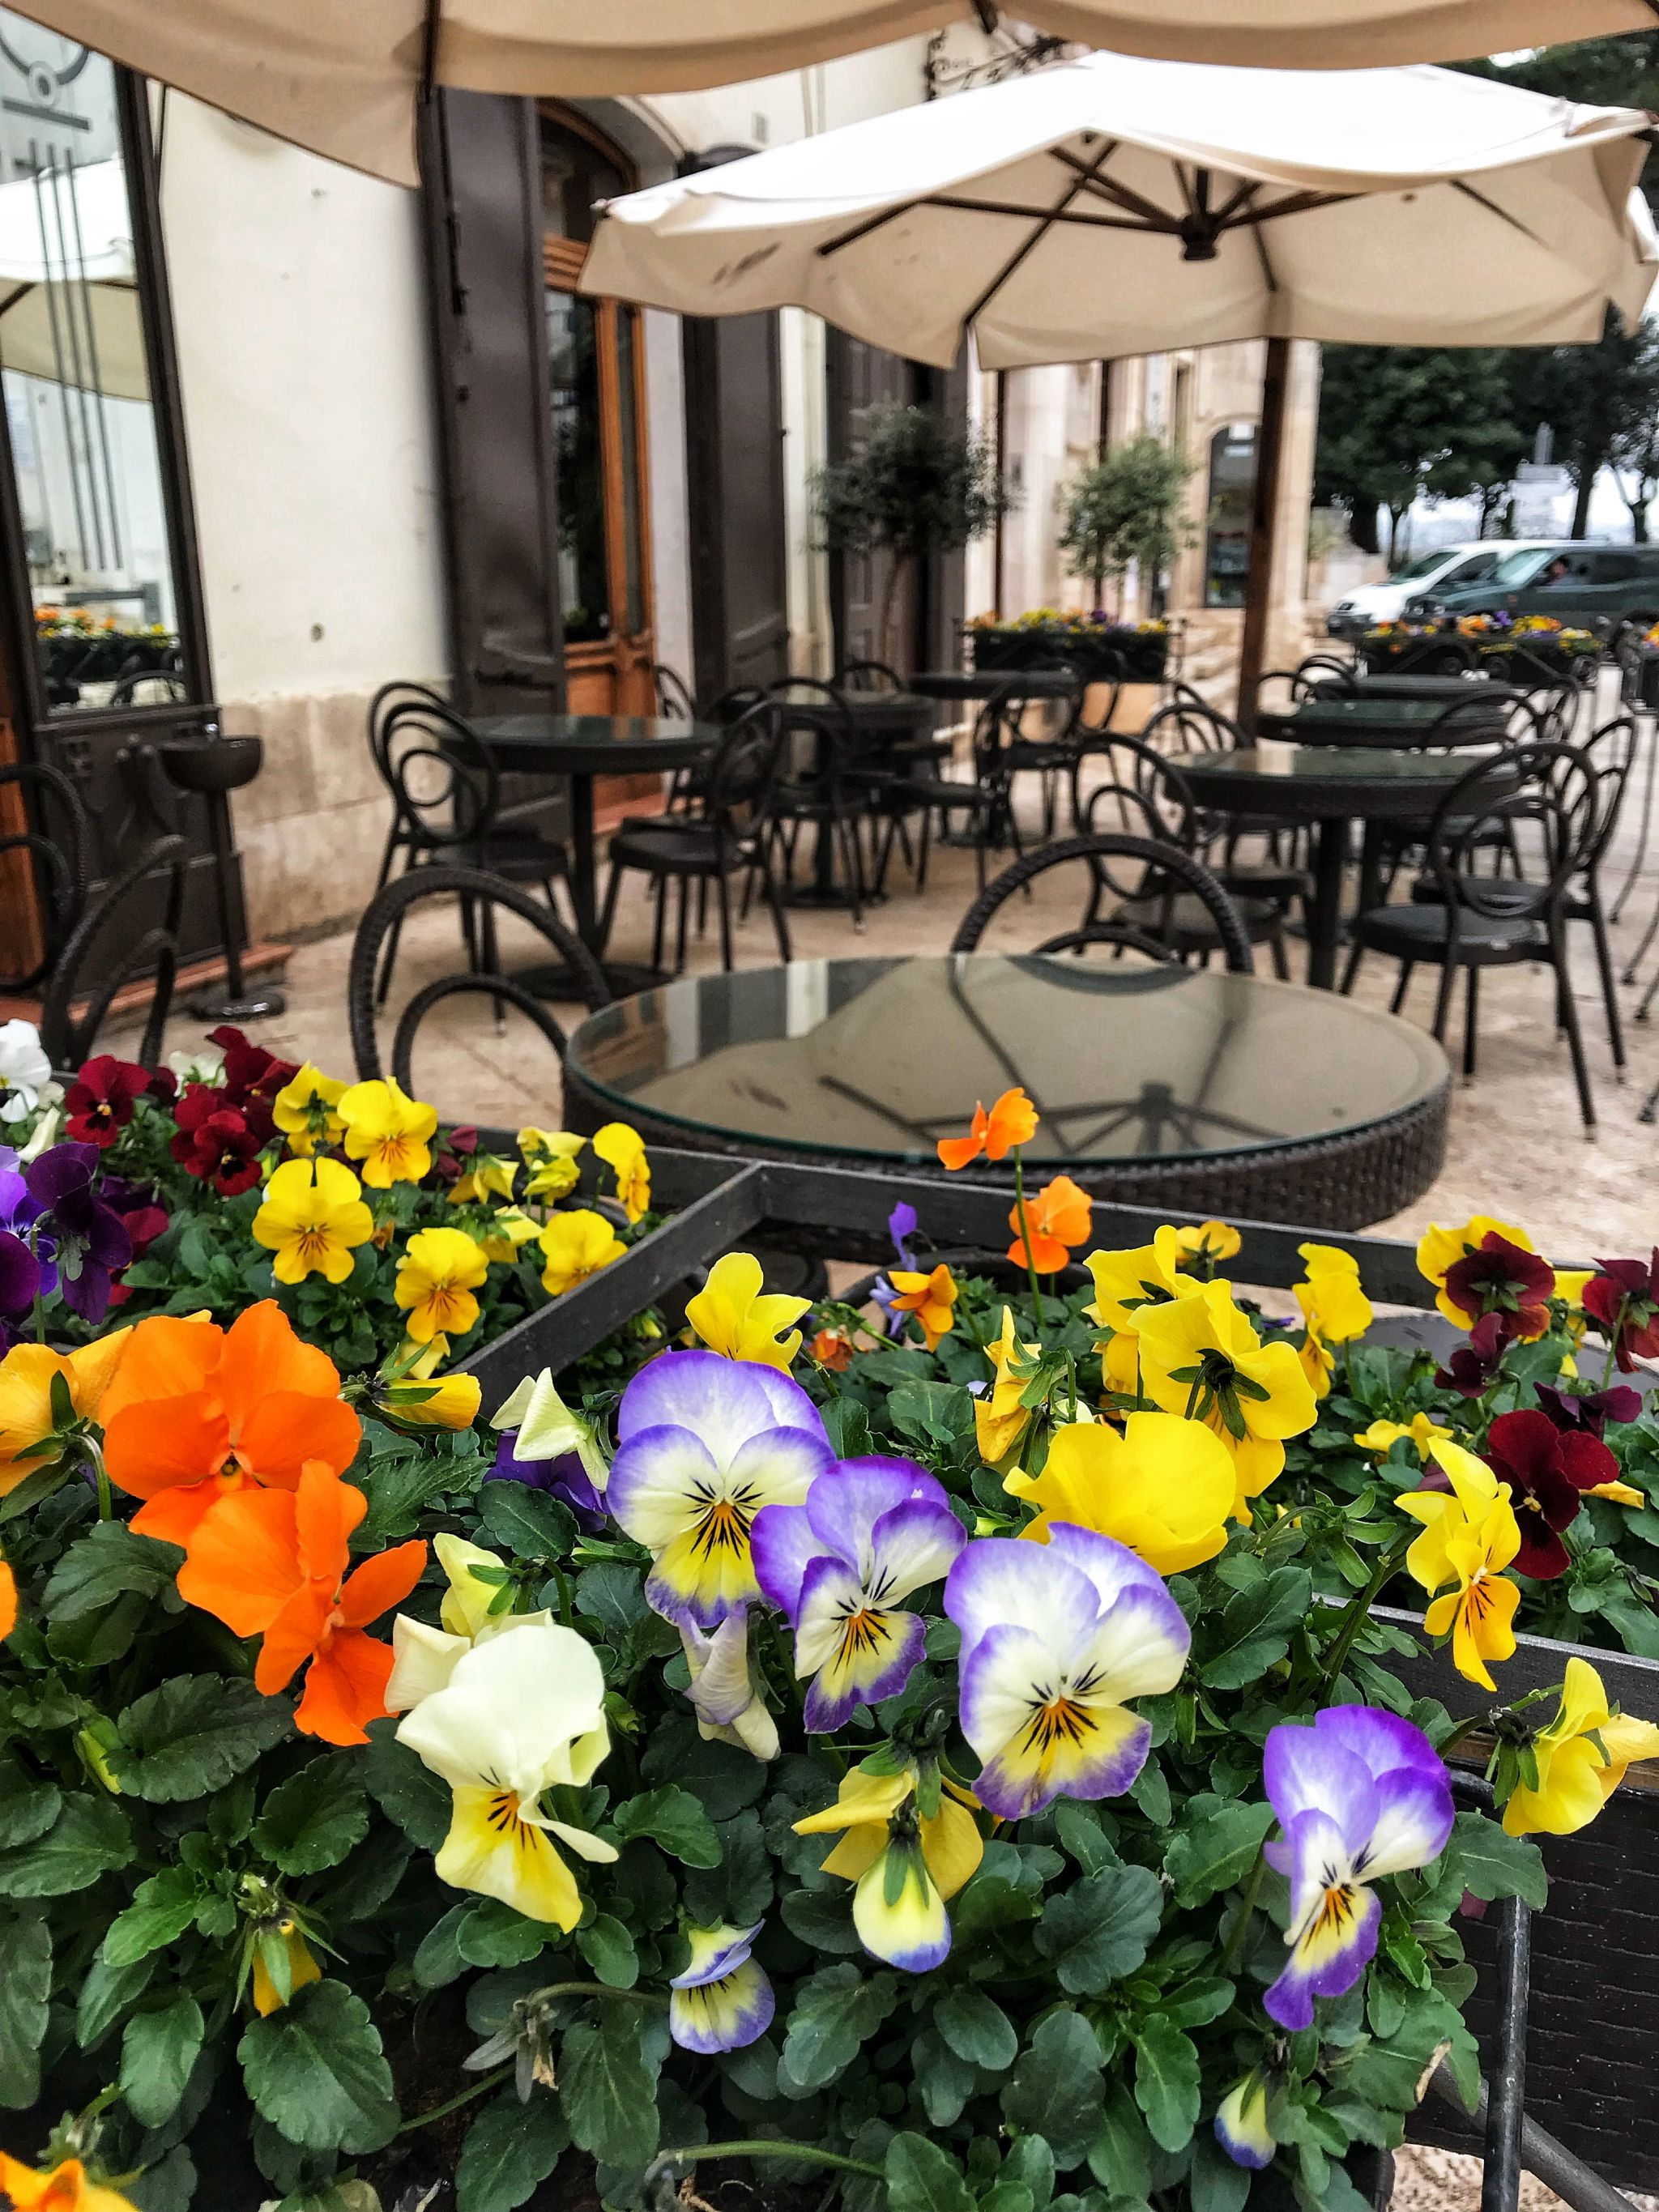 Pansies adorning a restaurant in Locorotondo